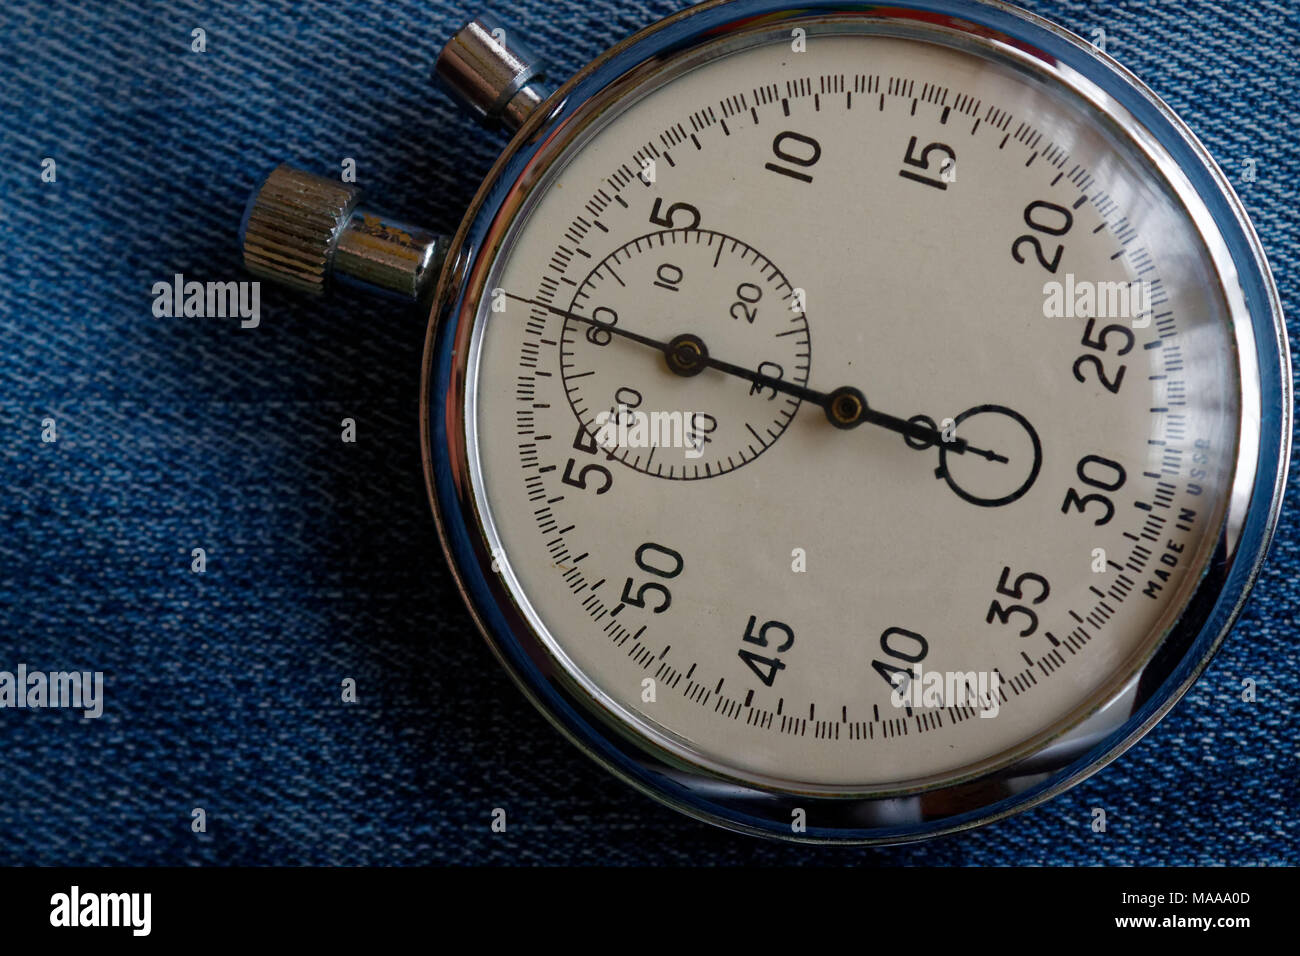 Stopwatch on worn blue jeans background, value measure time